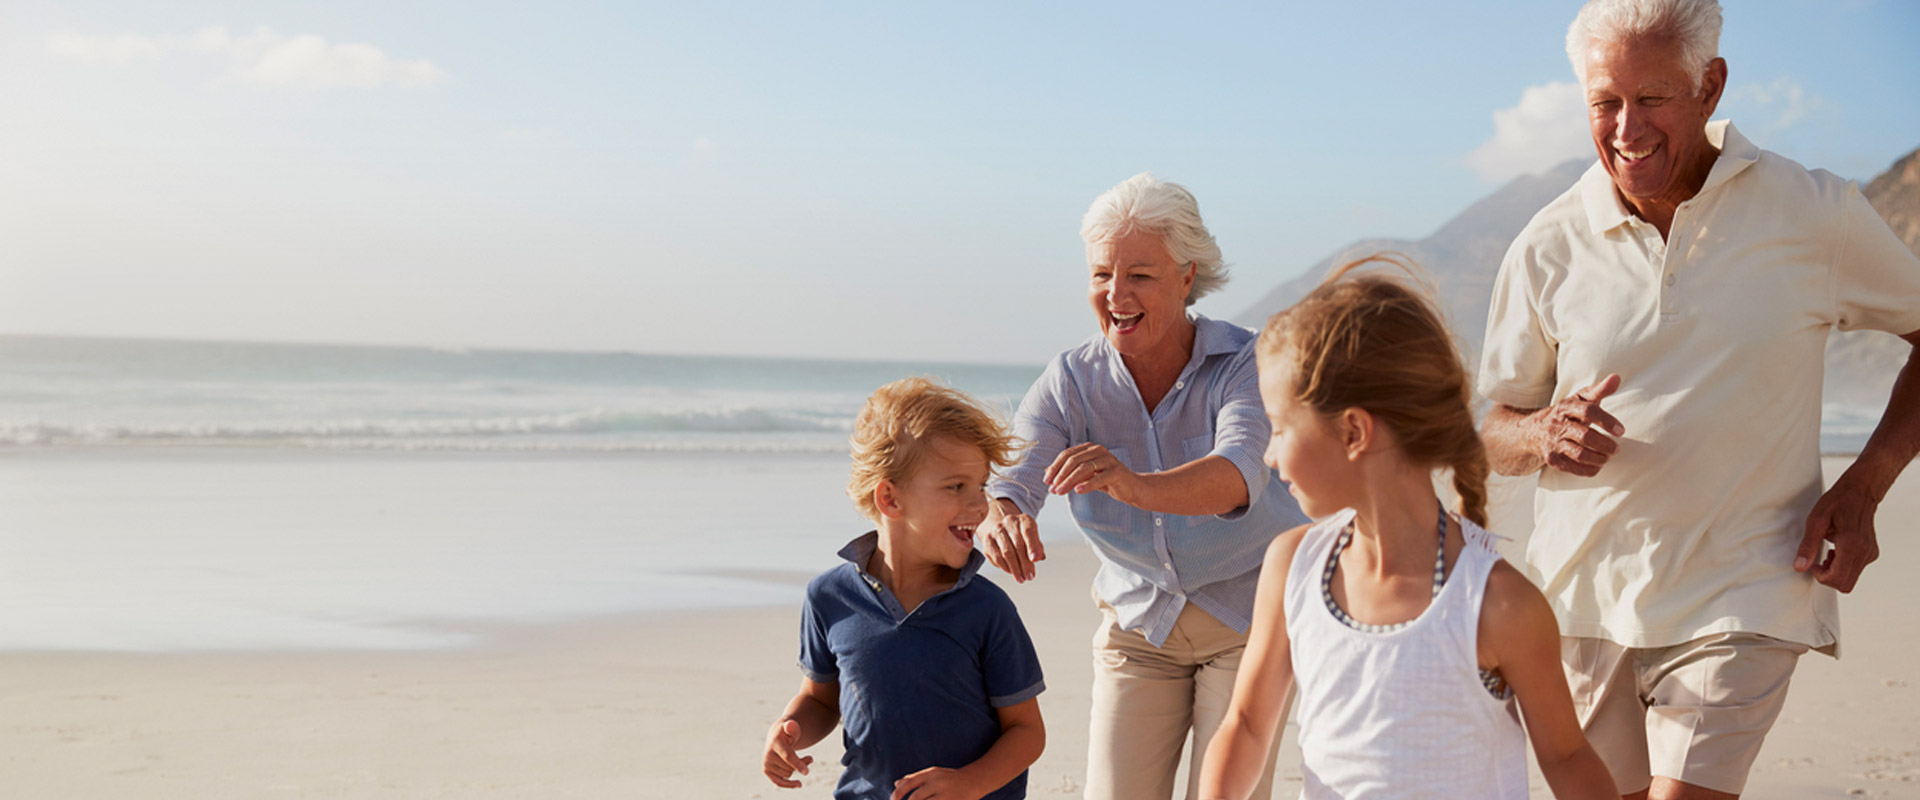 Our scope of orthopedic care includes adolescent, adult, and geriatric patients.